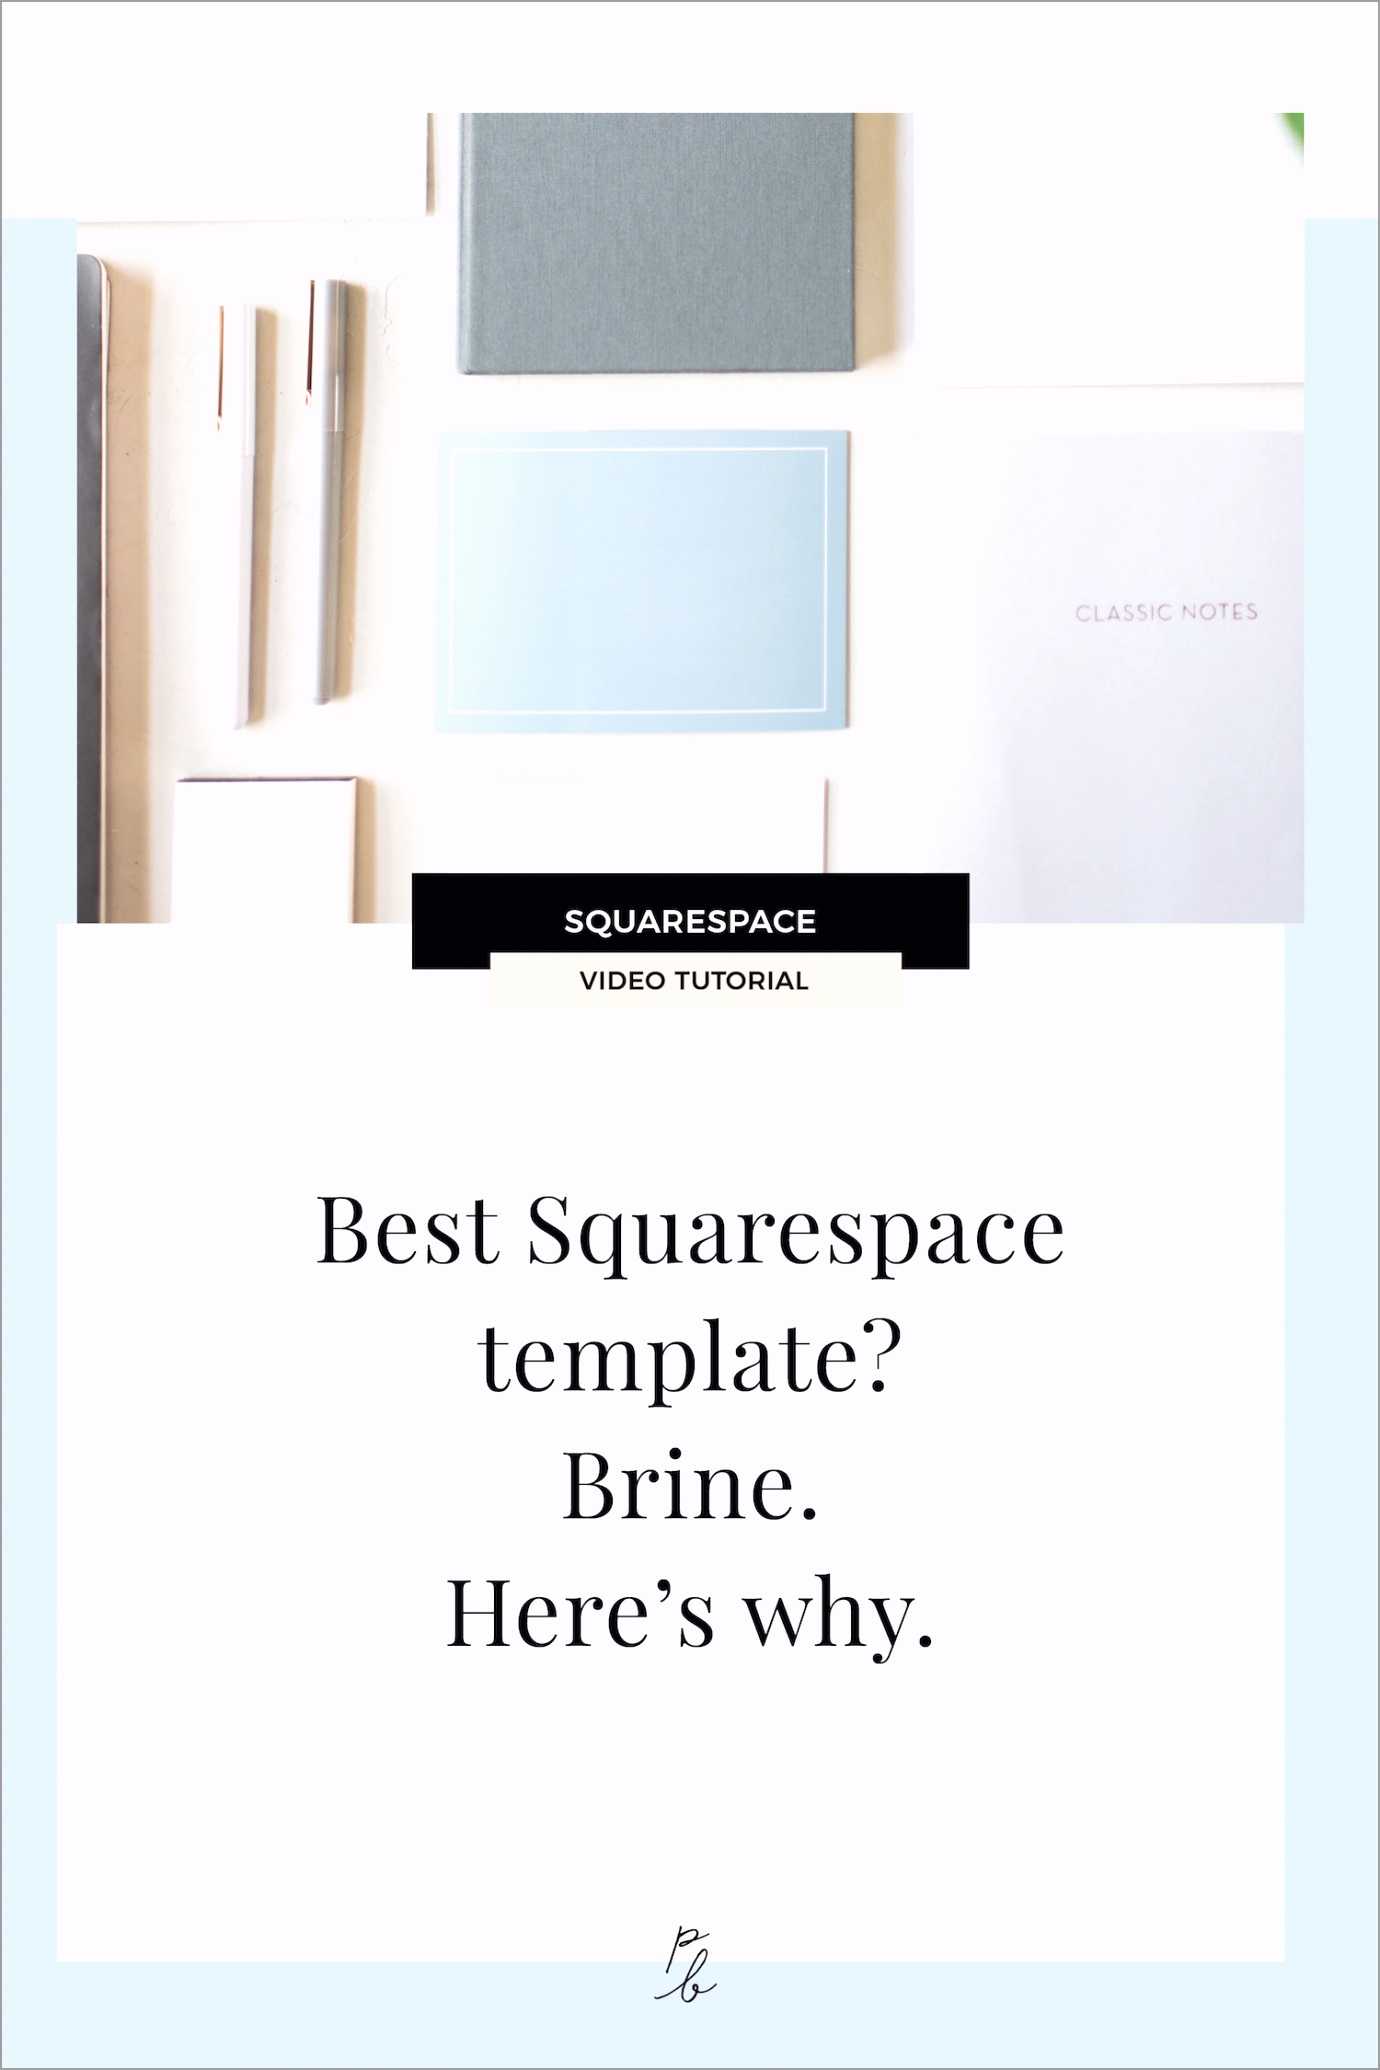 What is the best Squarespace template Brine Here s why pryto